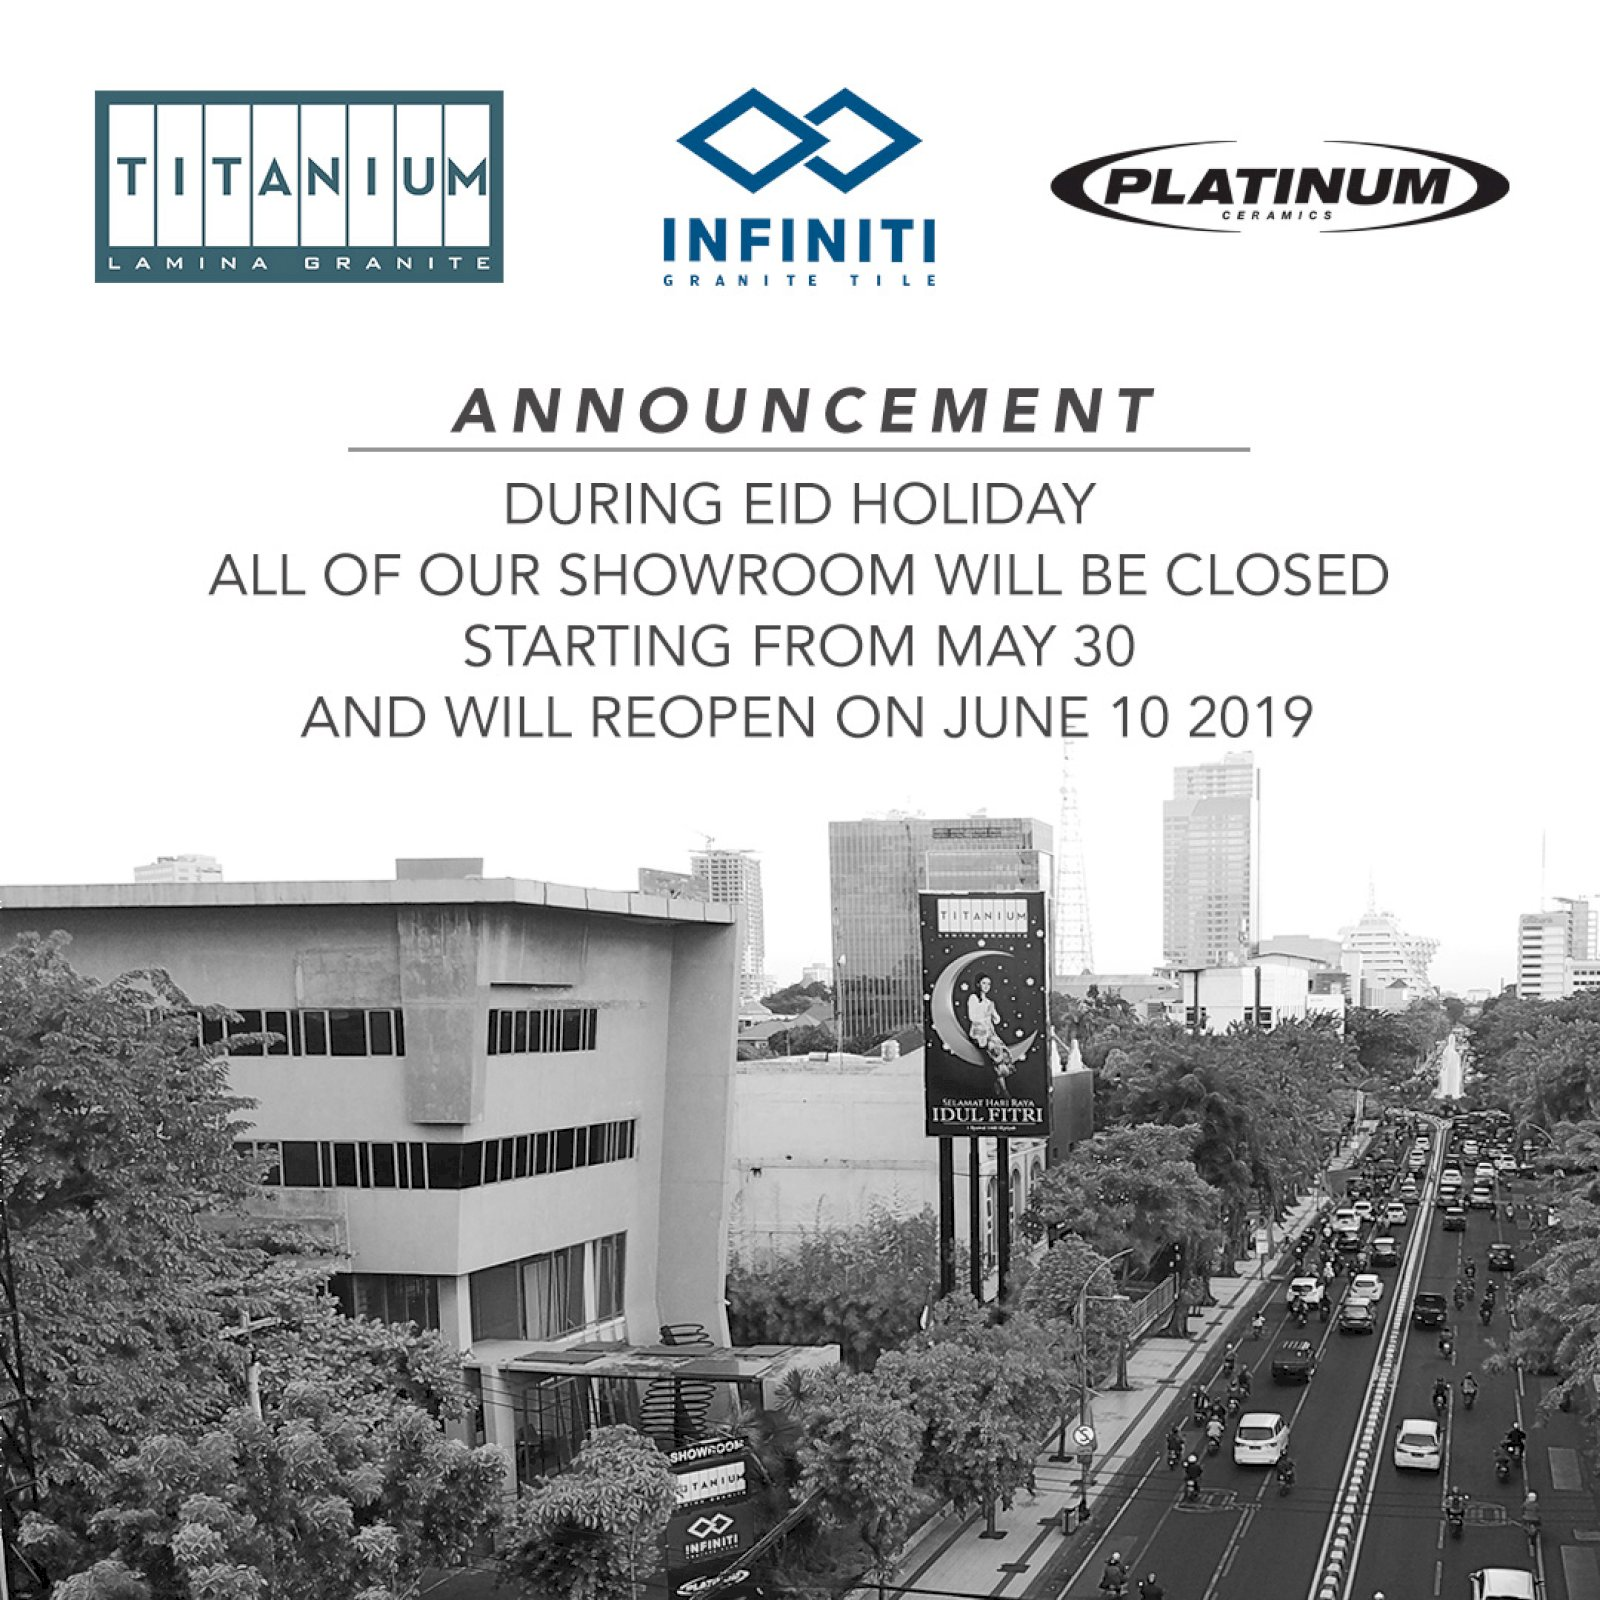 Announcement: Platinum Ceramics Showroom Closed during Eid Holiday